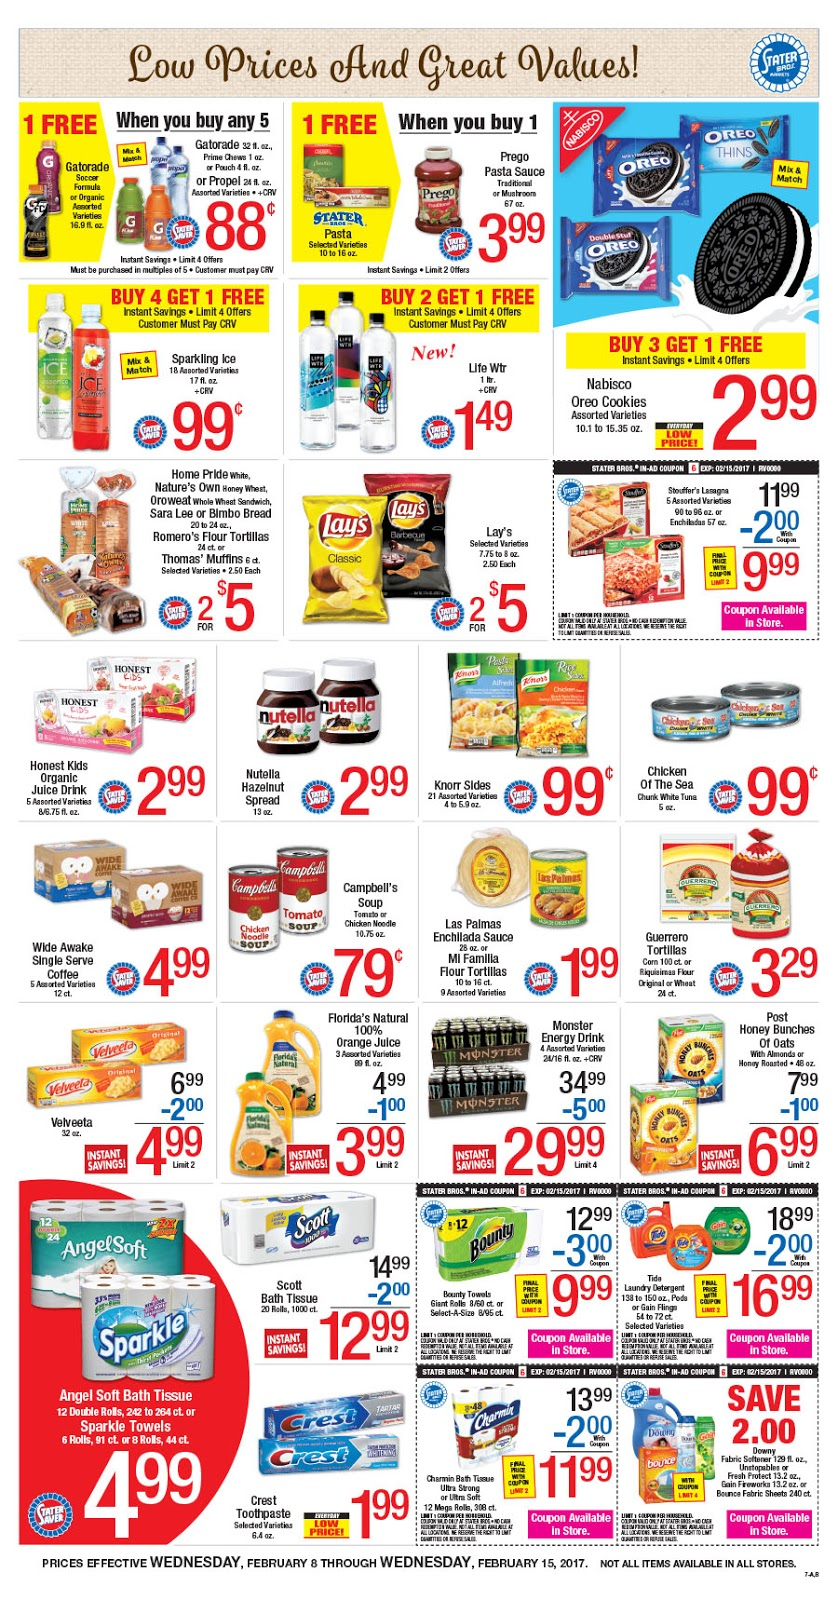 Stater bros weekly deals - Passion coupons